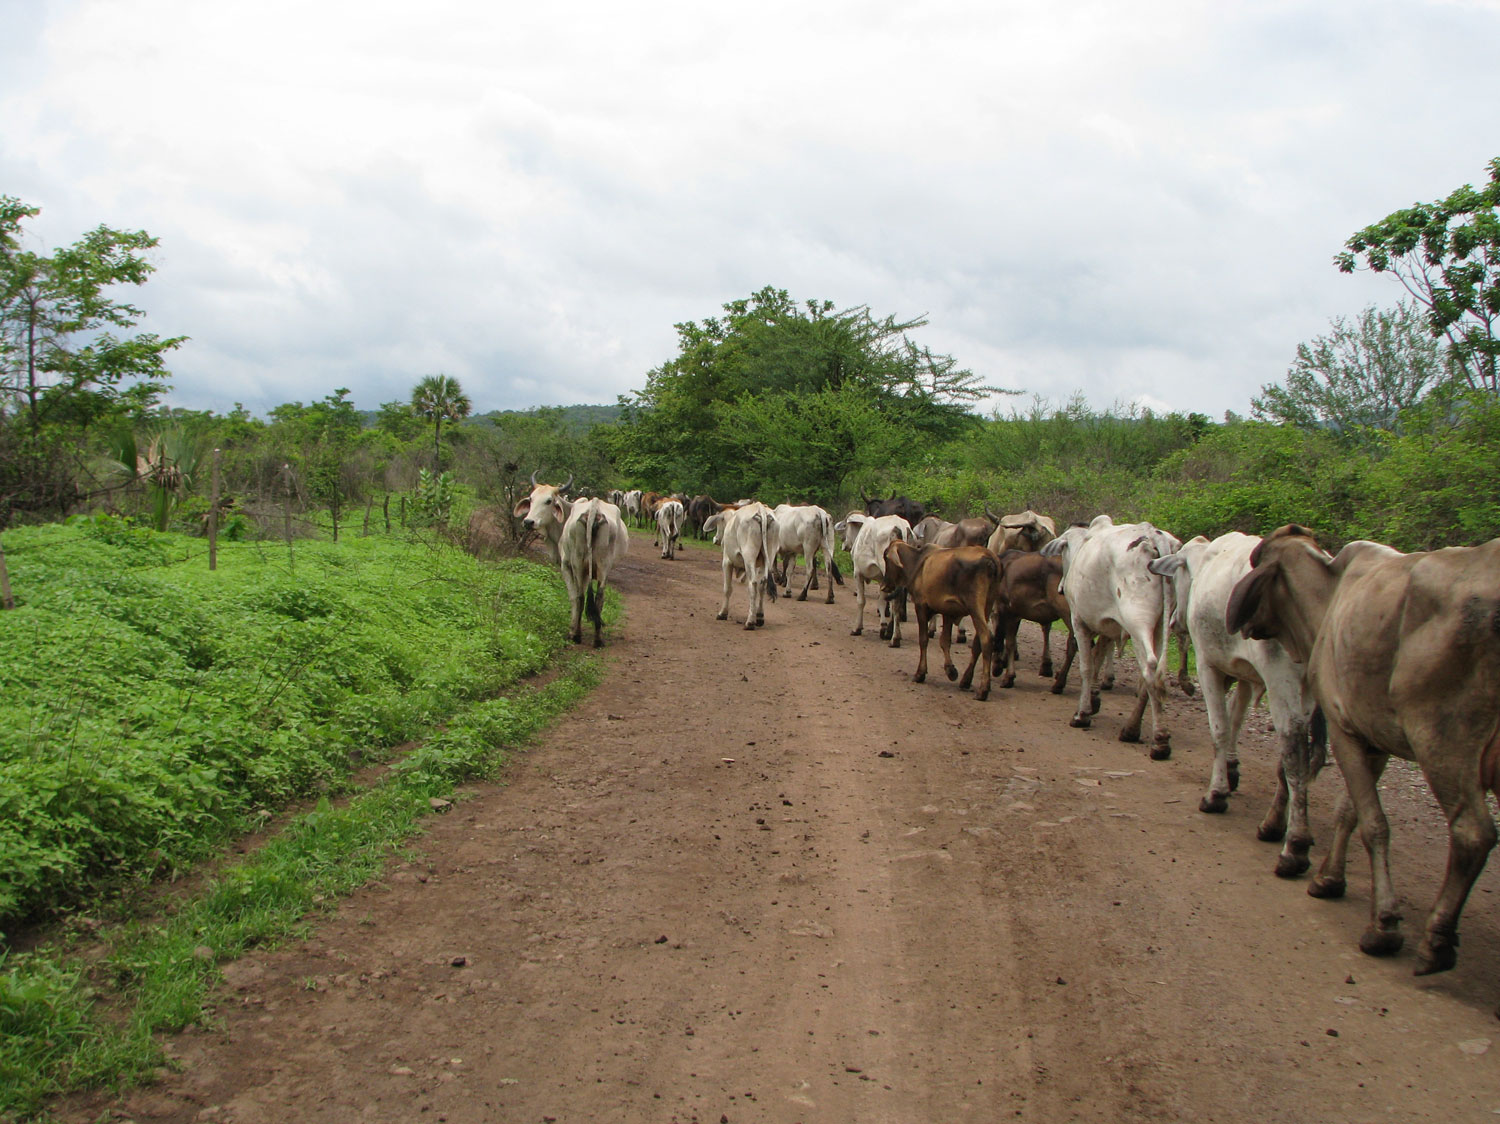 We had to carefully pass through this herd of cows.